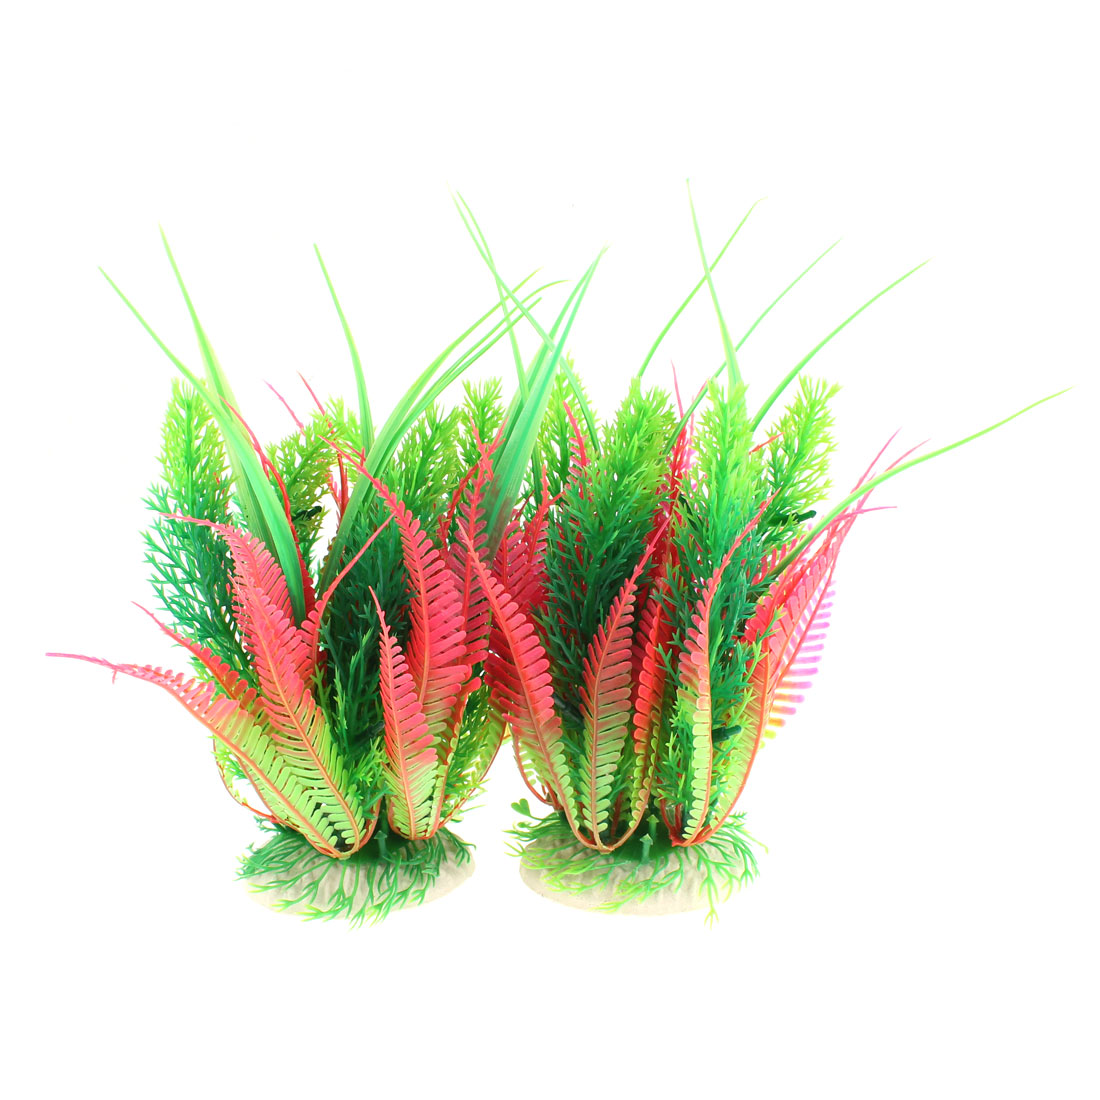 Aquarium Artificial Aquatic Grass Plant Decor 21cm High 2PCS